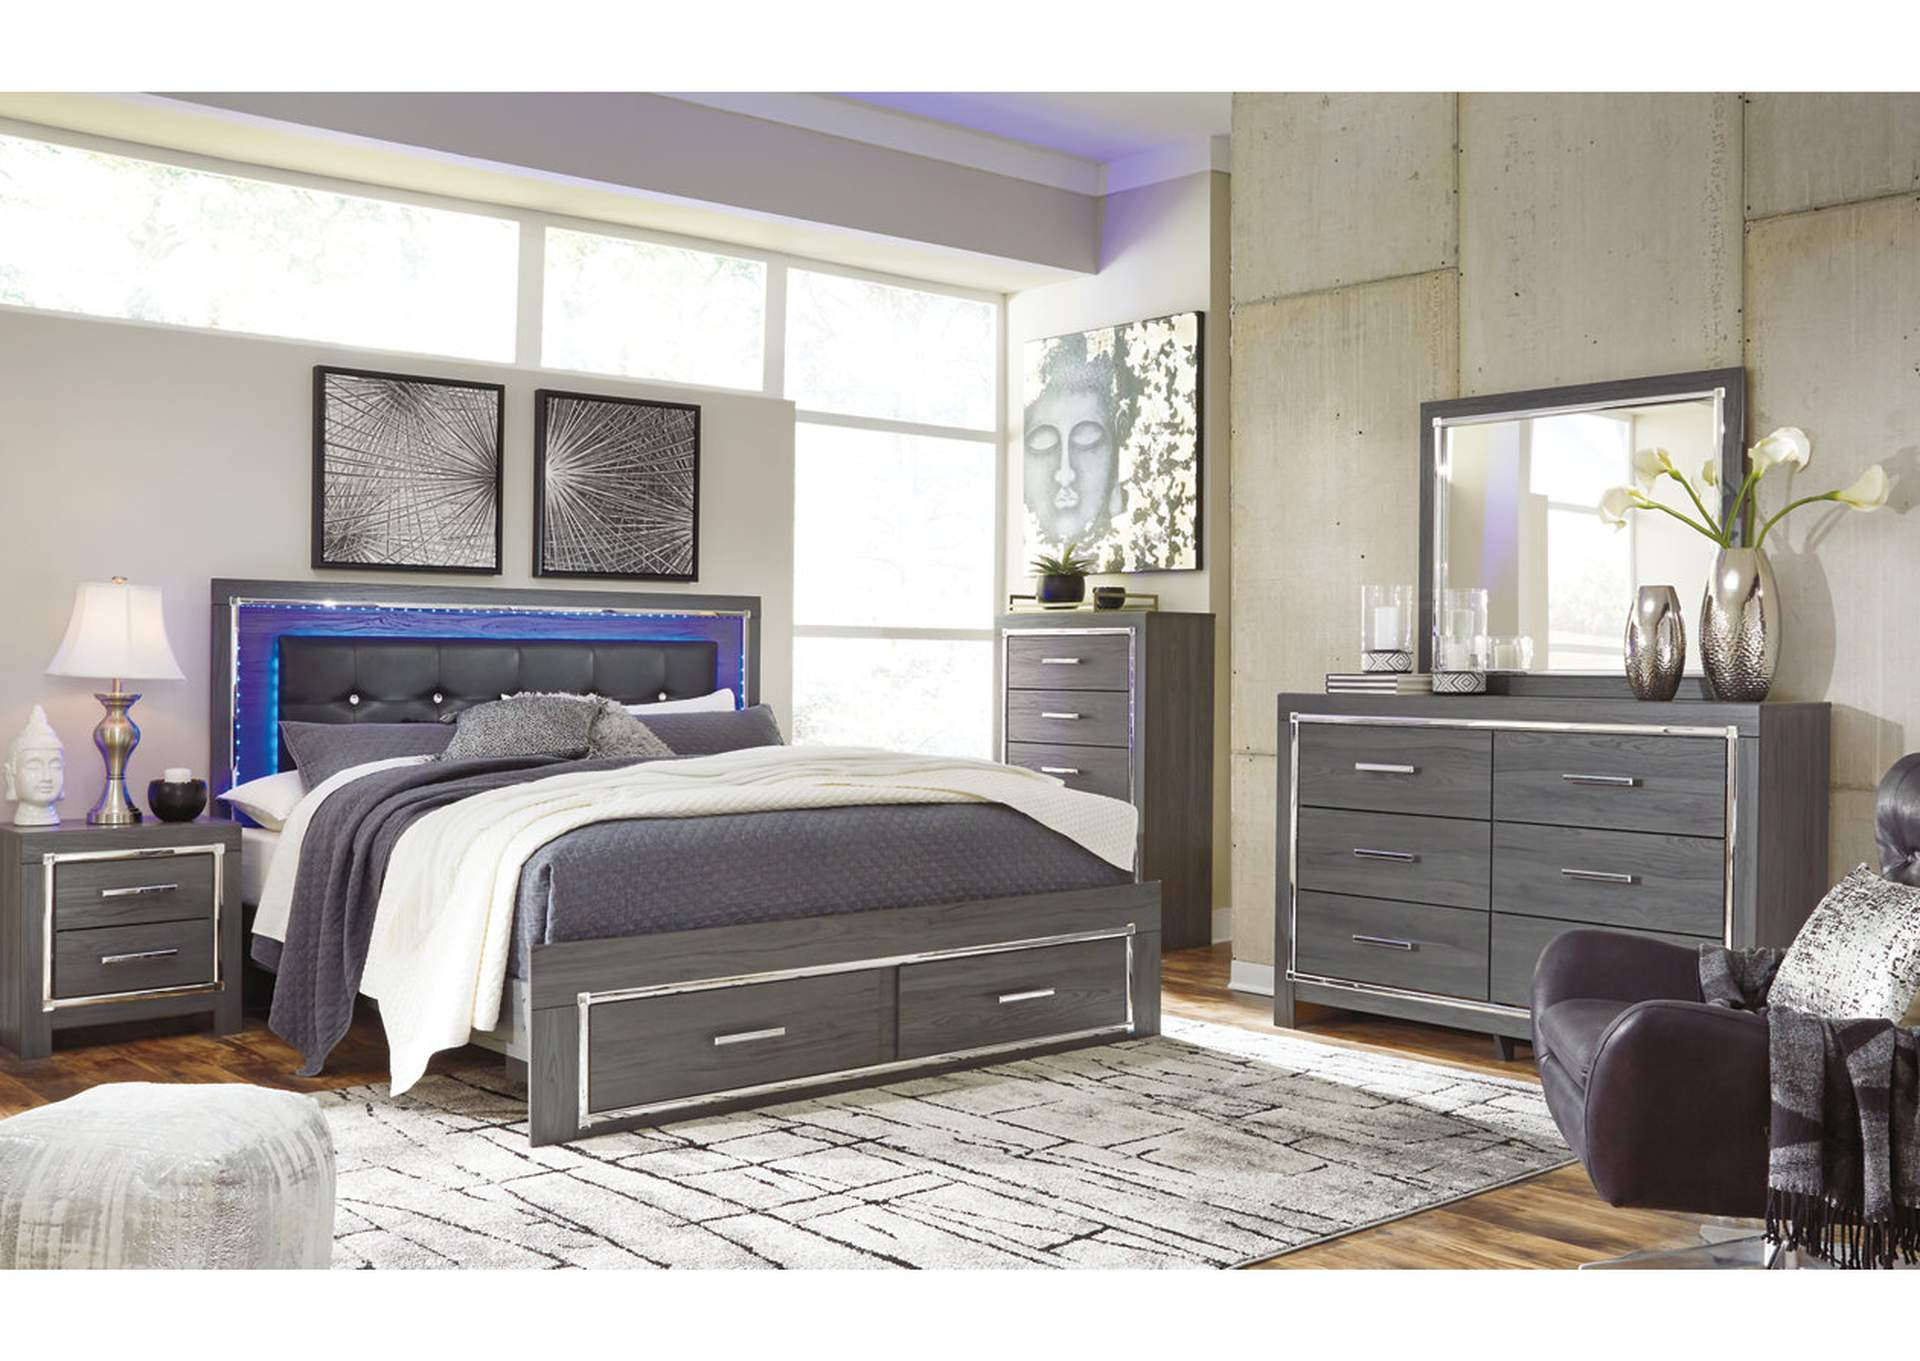 Lodanna Gray Full Storage Bed w/Dresser & Mirror,Signature Design By Ashley